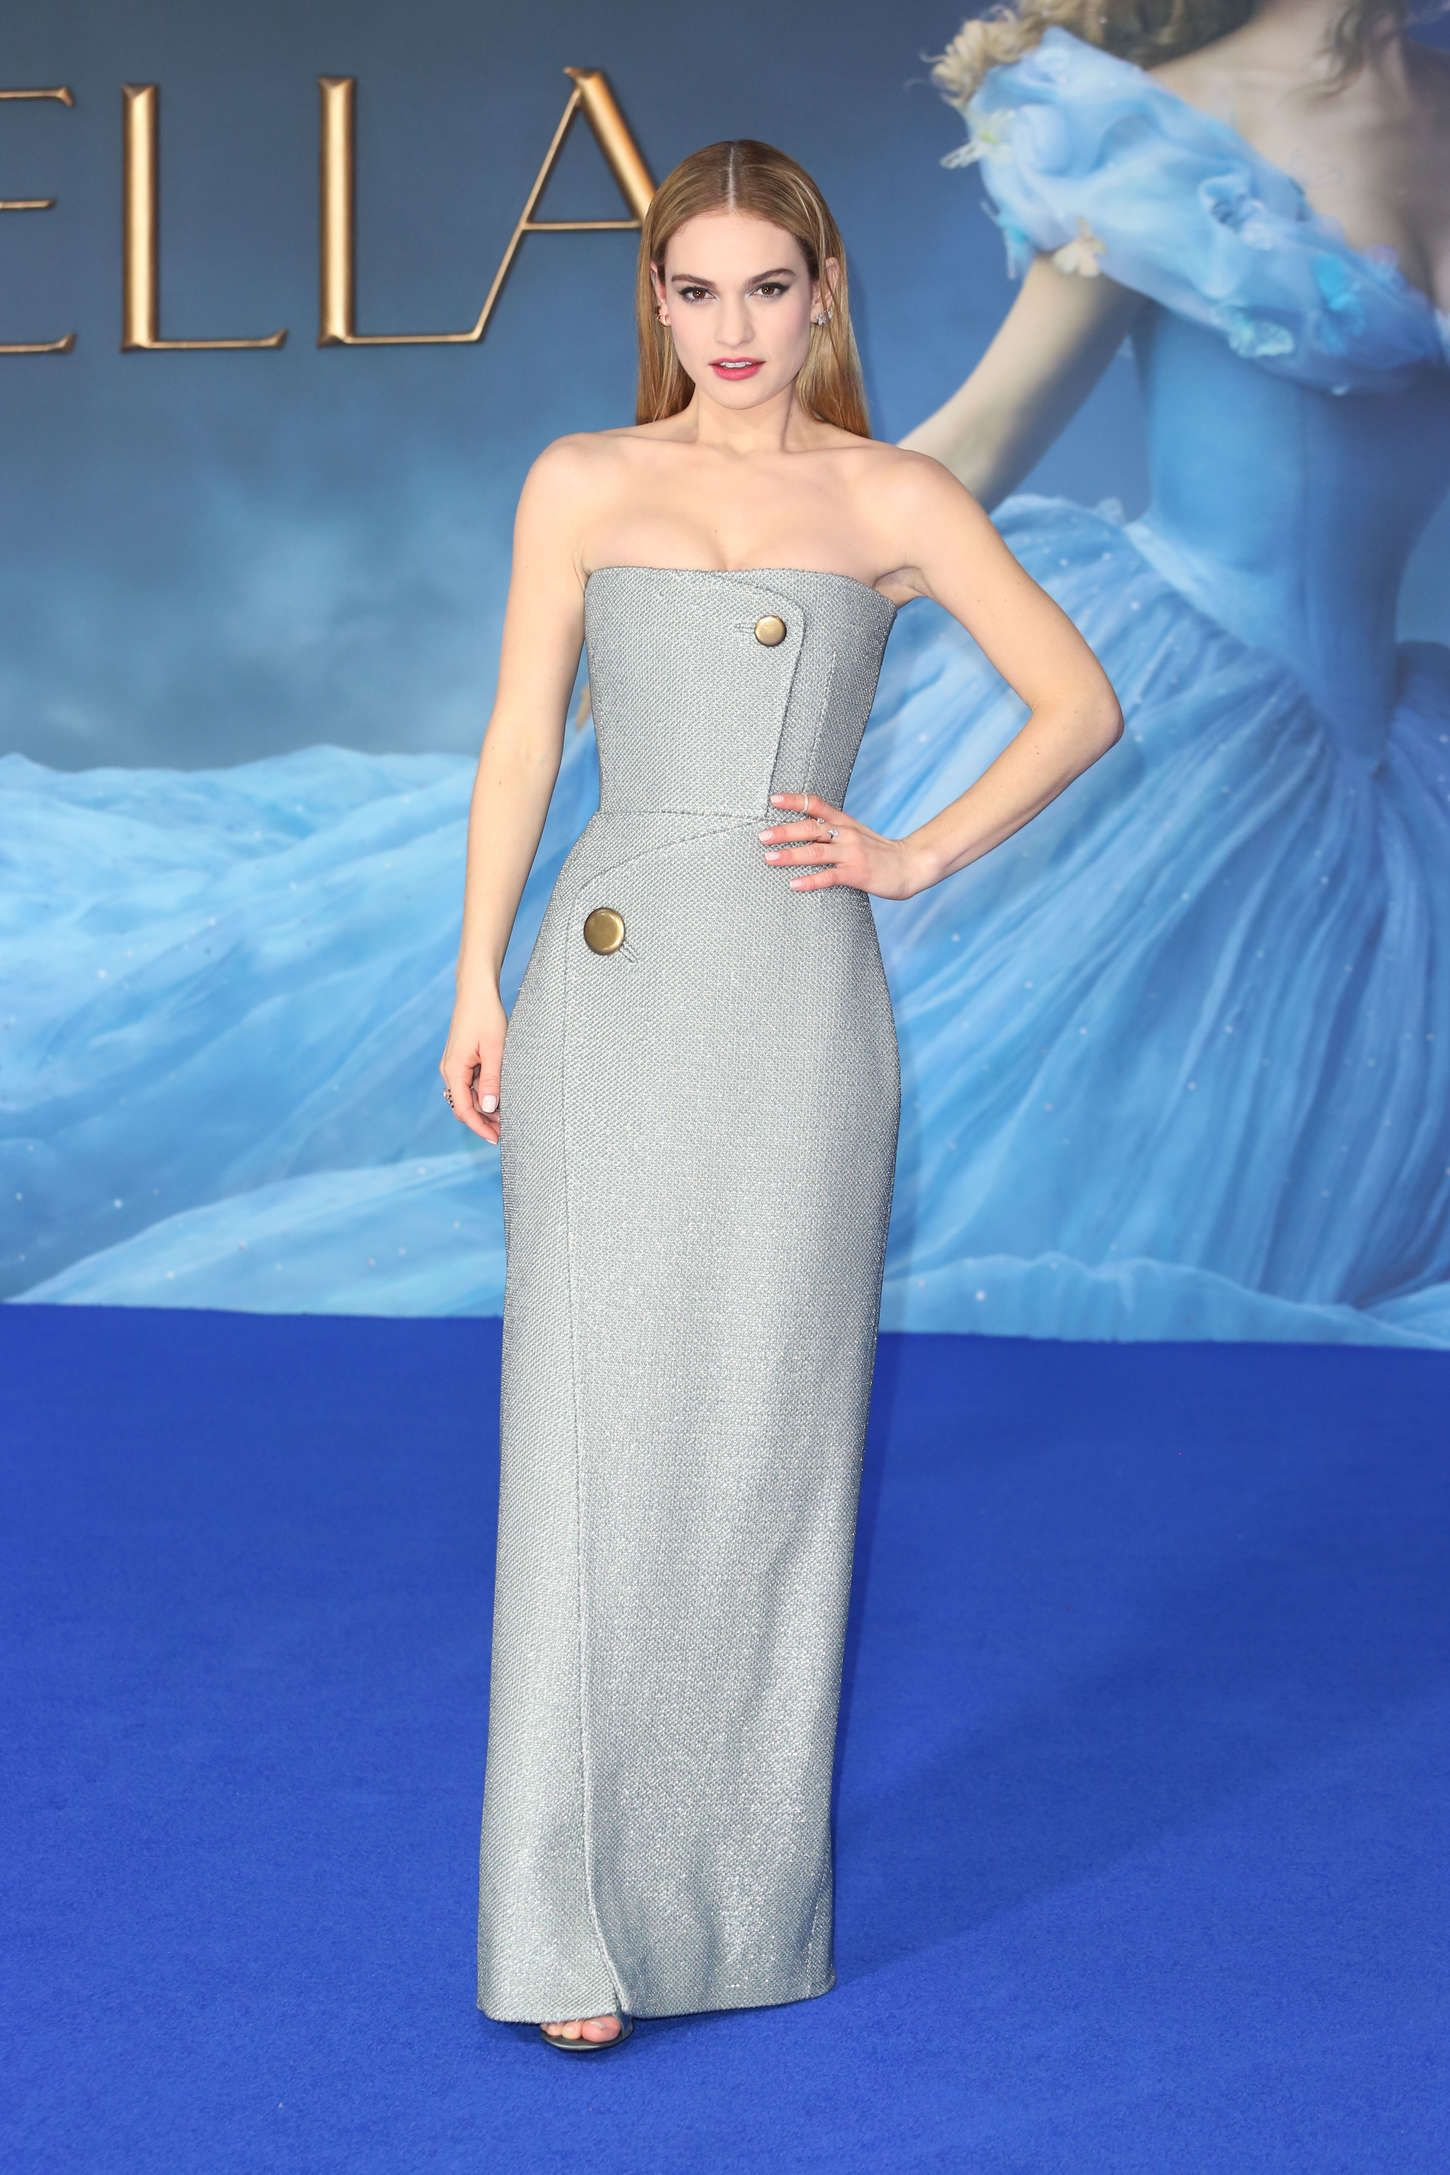 Lily at London Cinderella Premiere | Lily Chloe Ninette Thomson ...